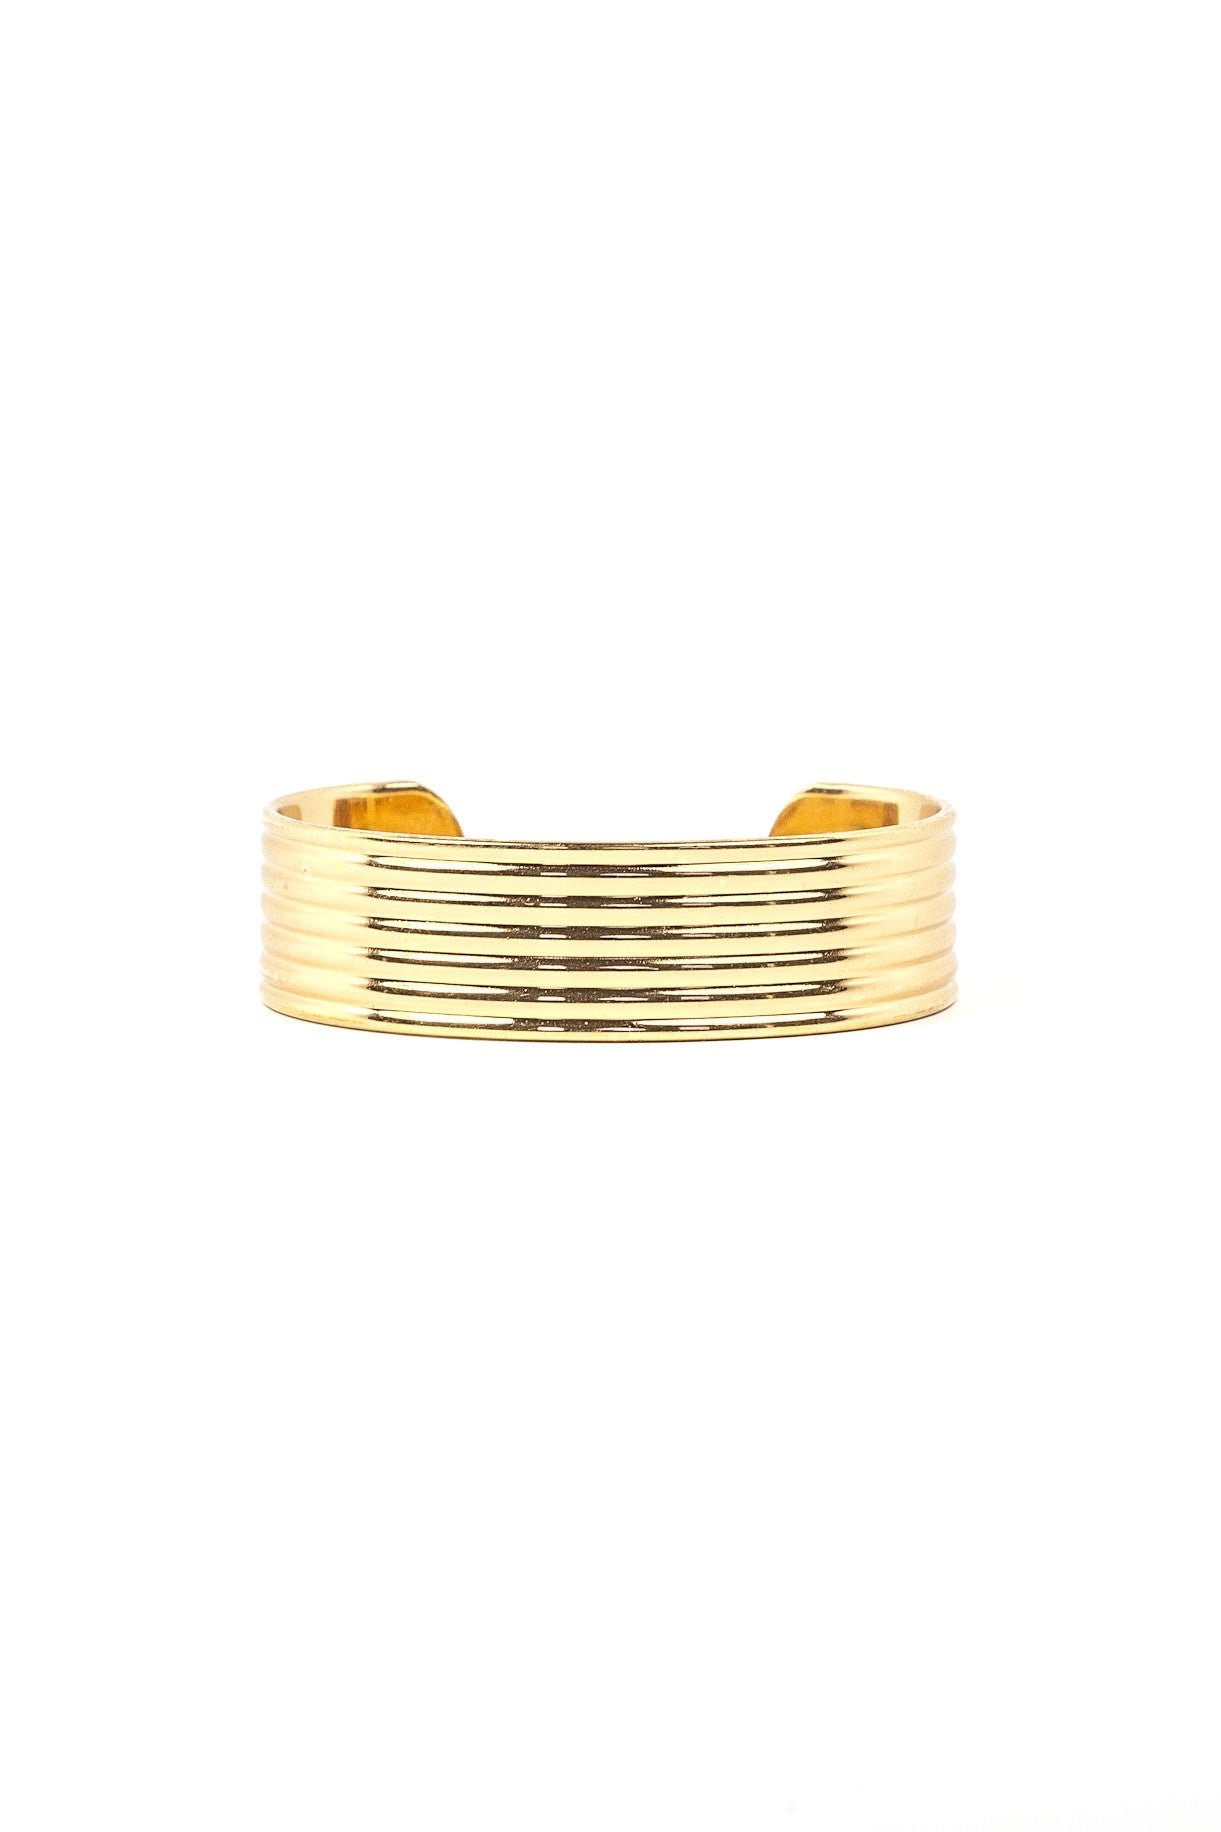 70's__Monet__Striped Cuff